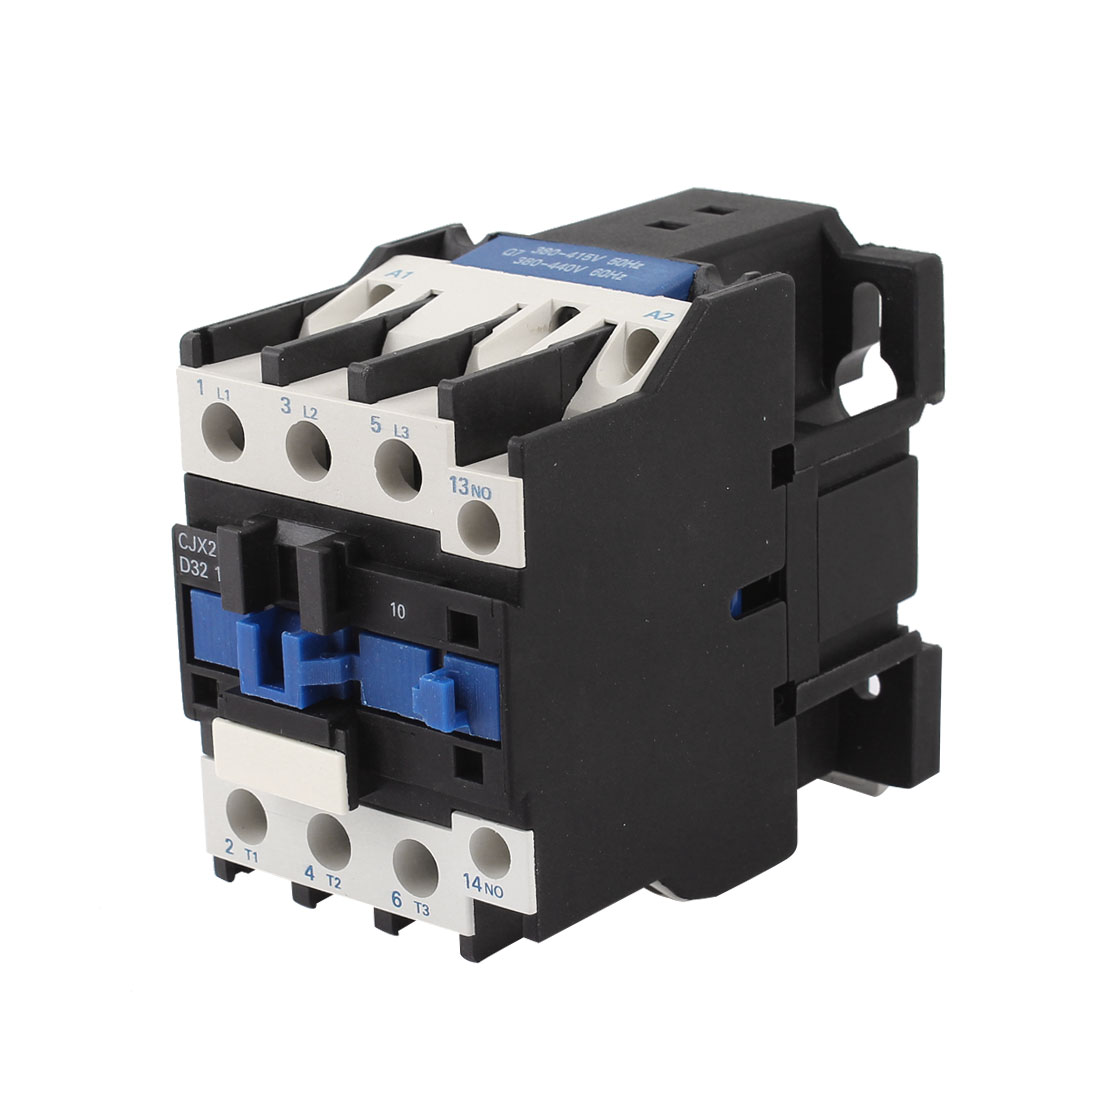 CJX2-3210 AC 380V Coil 35mm DIN Rail Mounting 3-Phase Electric Power Contactor